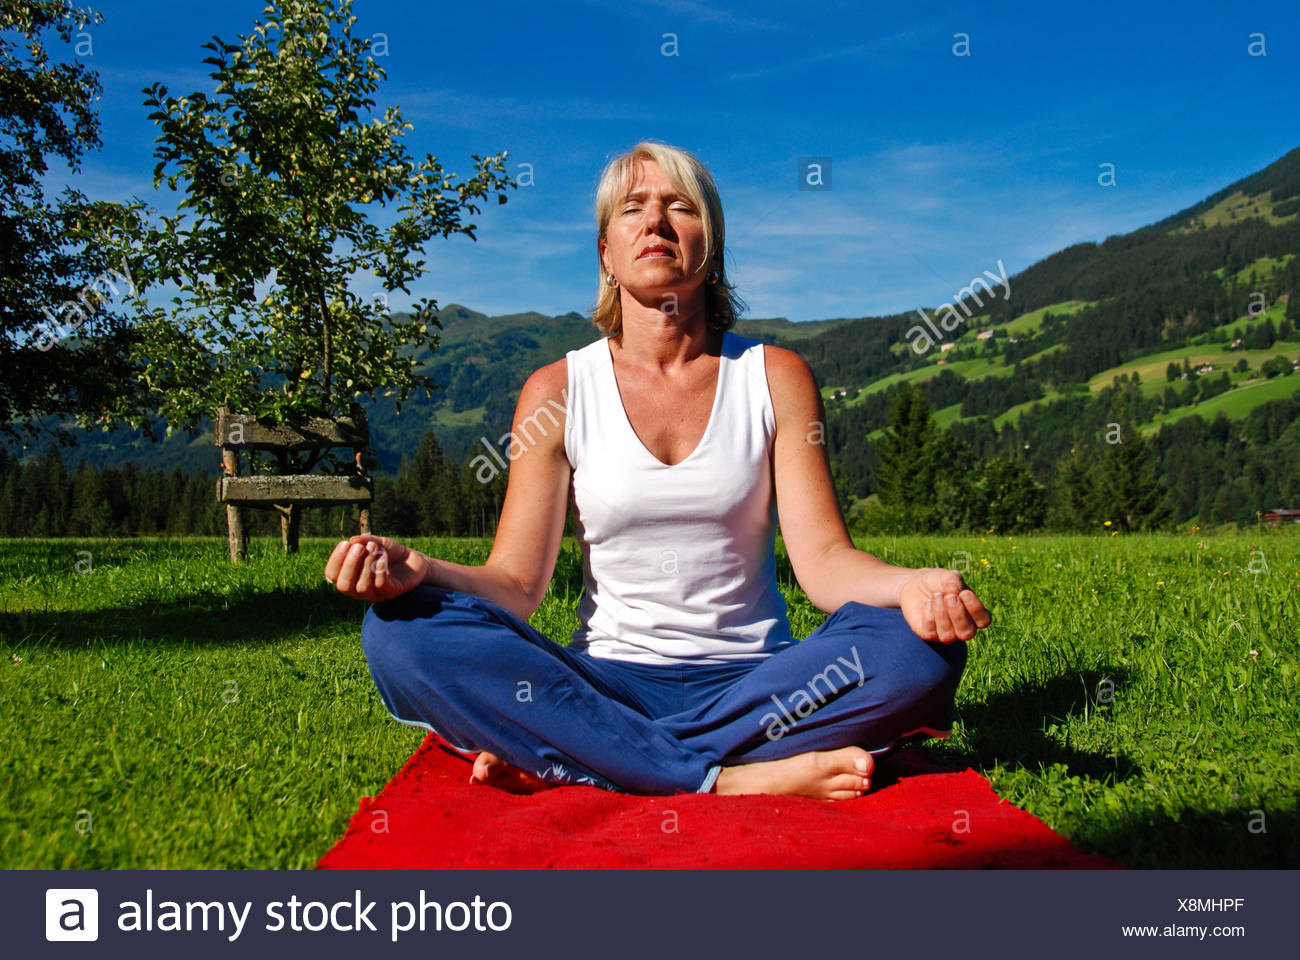 super chill out - Stock Image